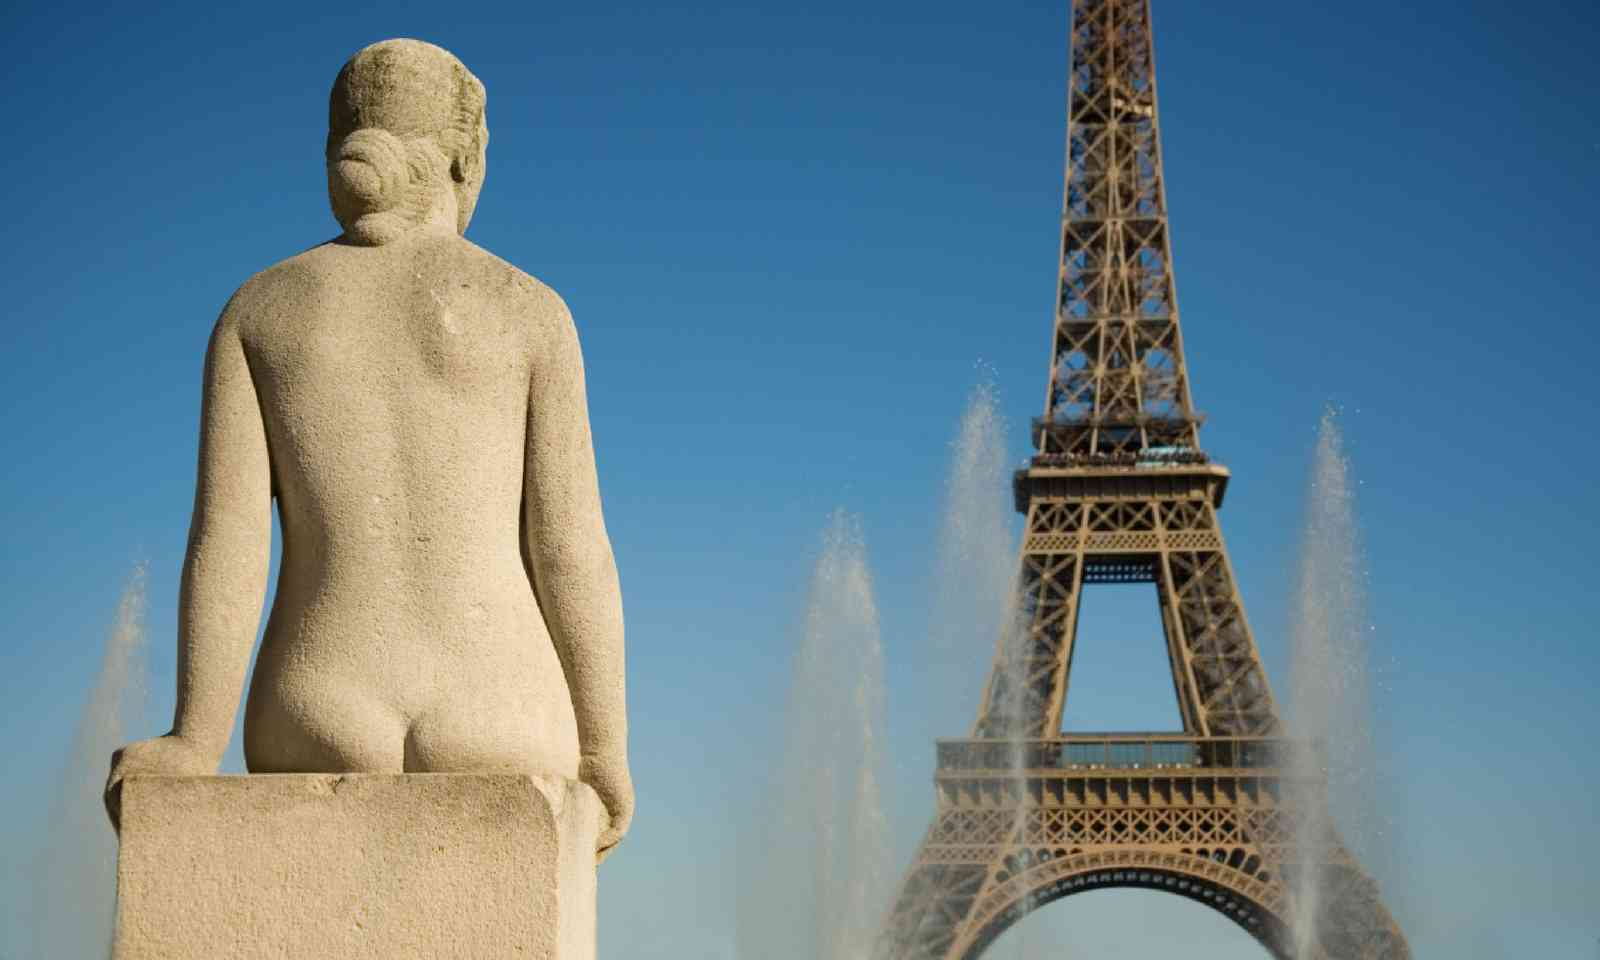 Statue of woman at the Trocadero looking at the Eiffel Tower (Shutterstock)